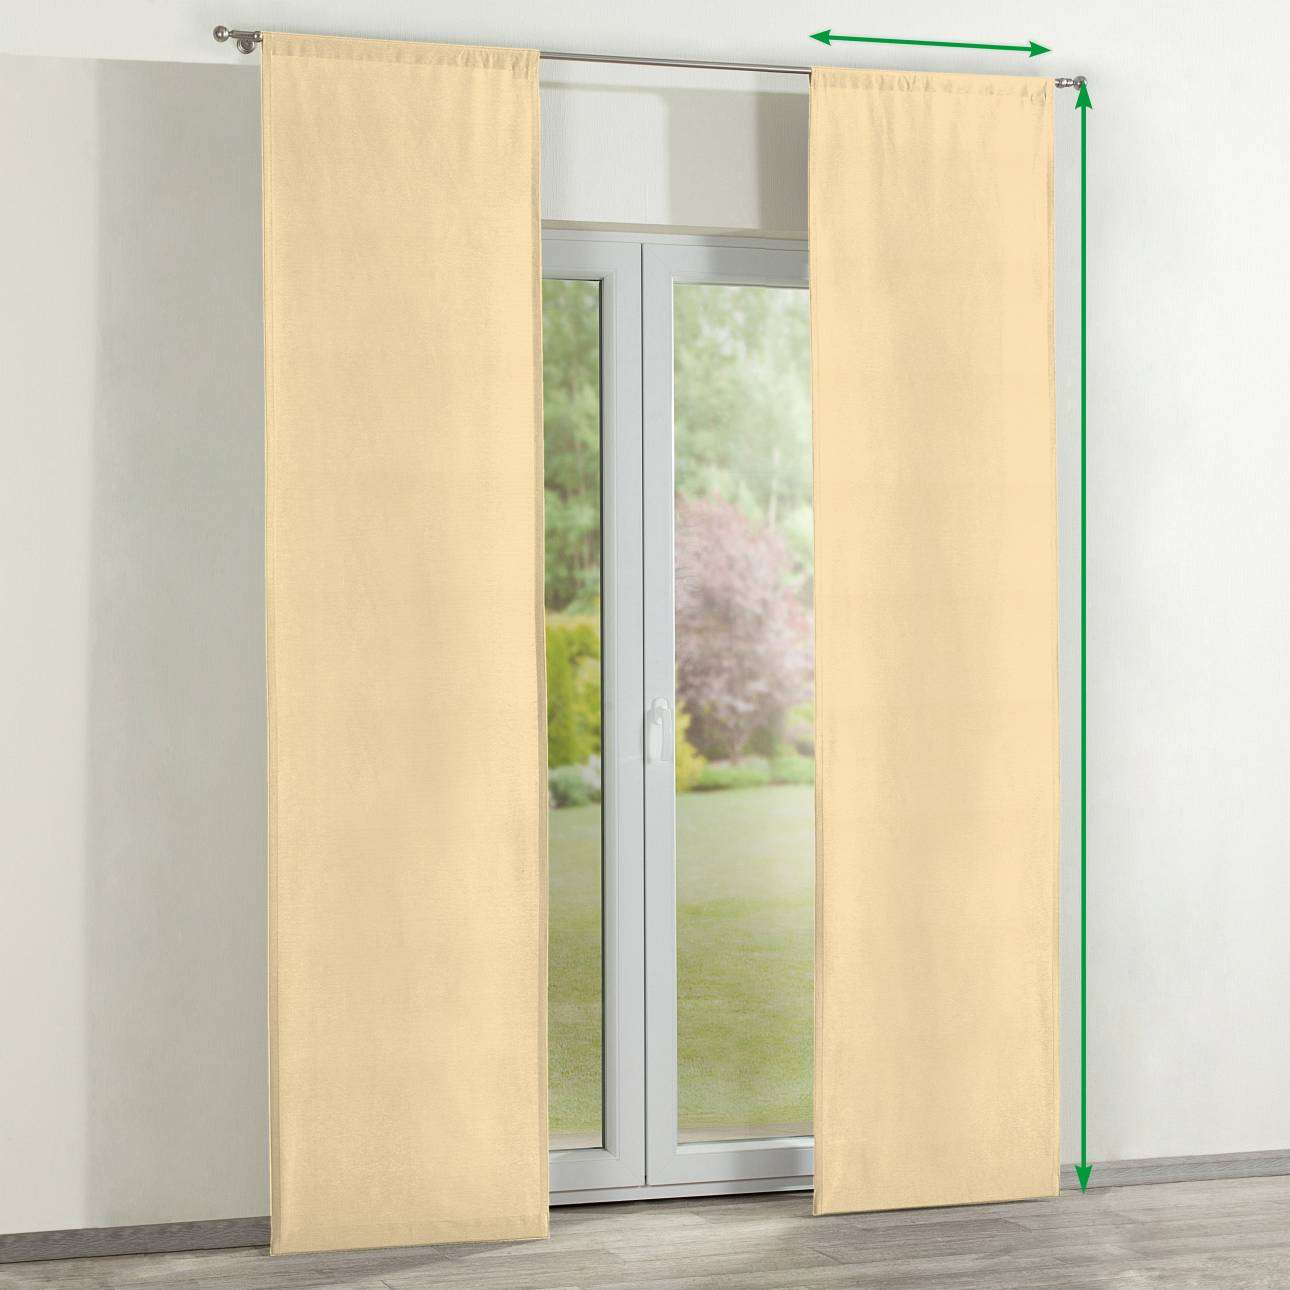 Slot panel curtains – Set of 2 in collection Jupiter, fabric: 127-42